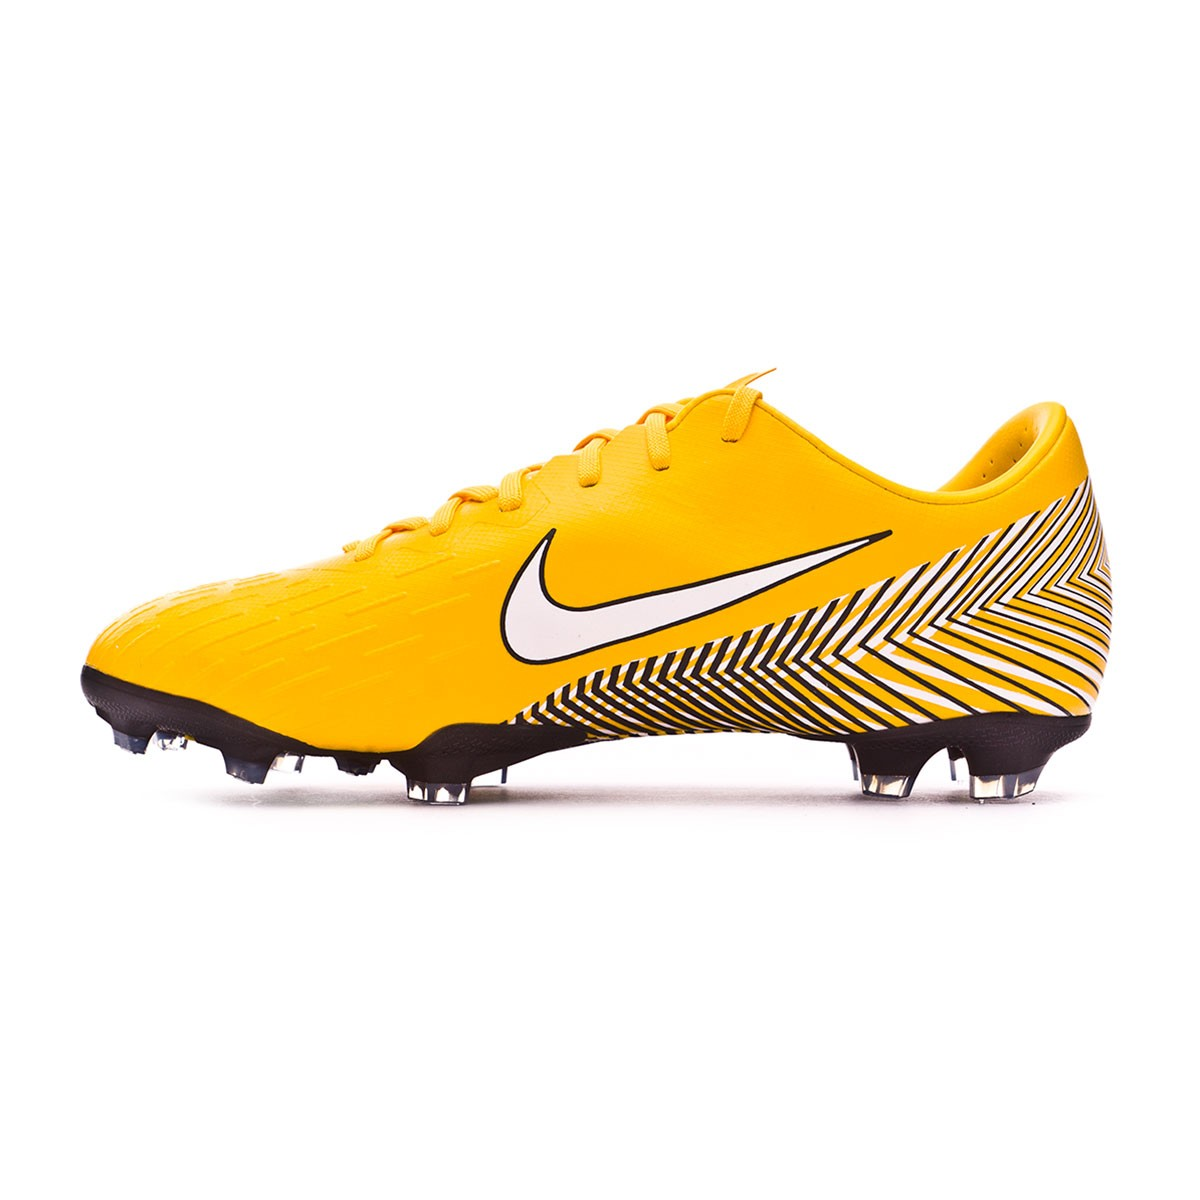 08d46c223 Football Boots Nike Kids Mercurial Vapor XII Elite FG Neymar Yellow-Black-Anthracite  - Tienda de fútbol Fútbol Emotion